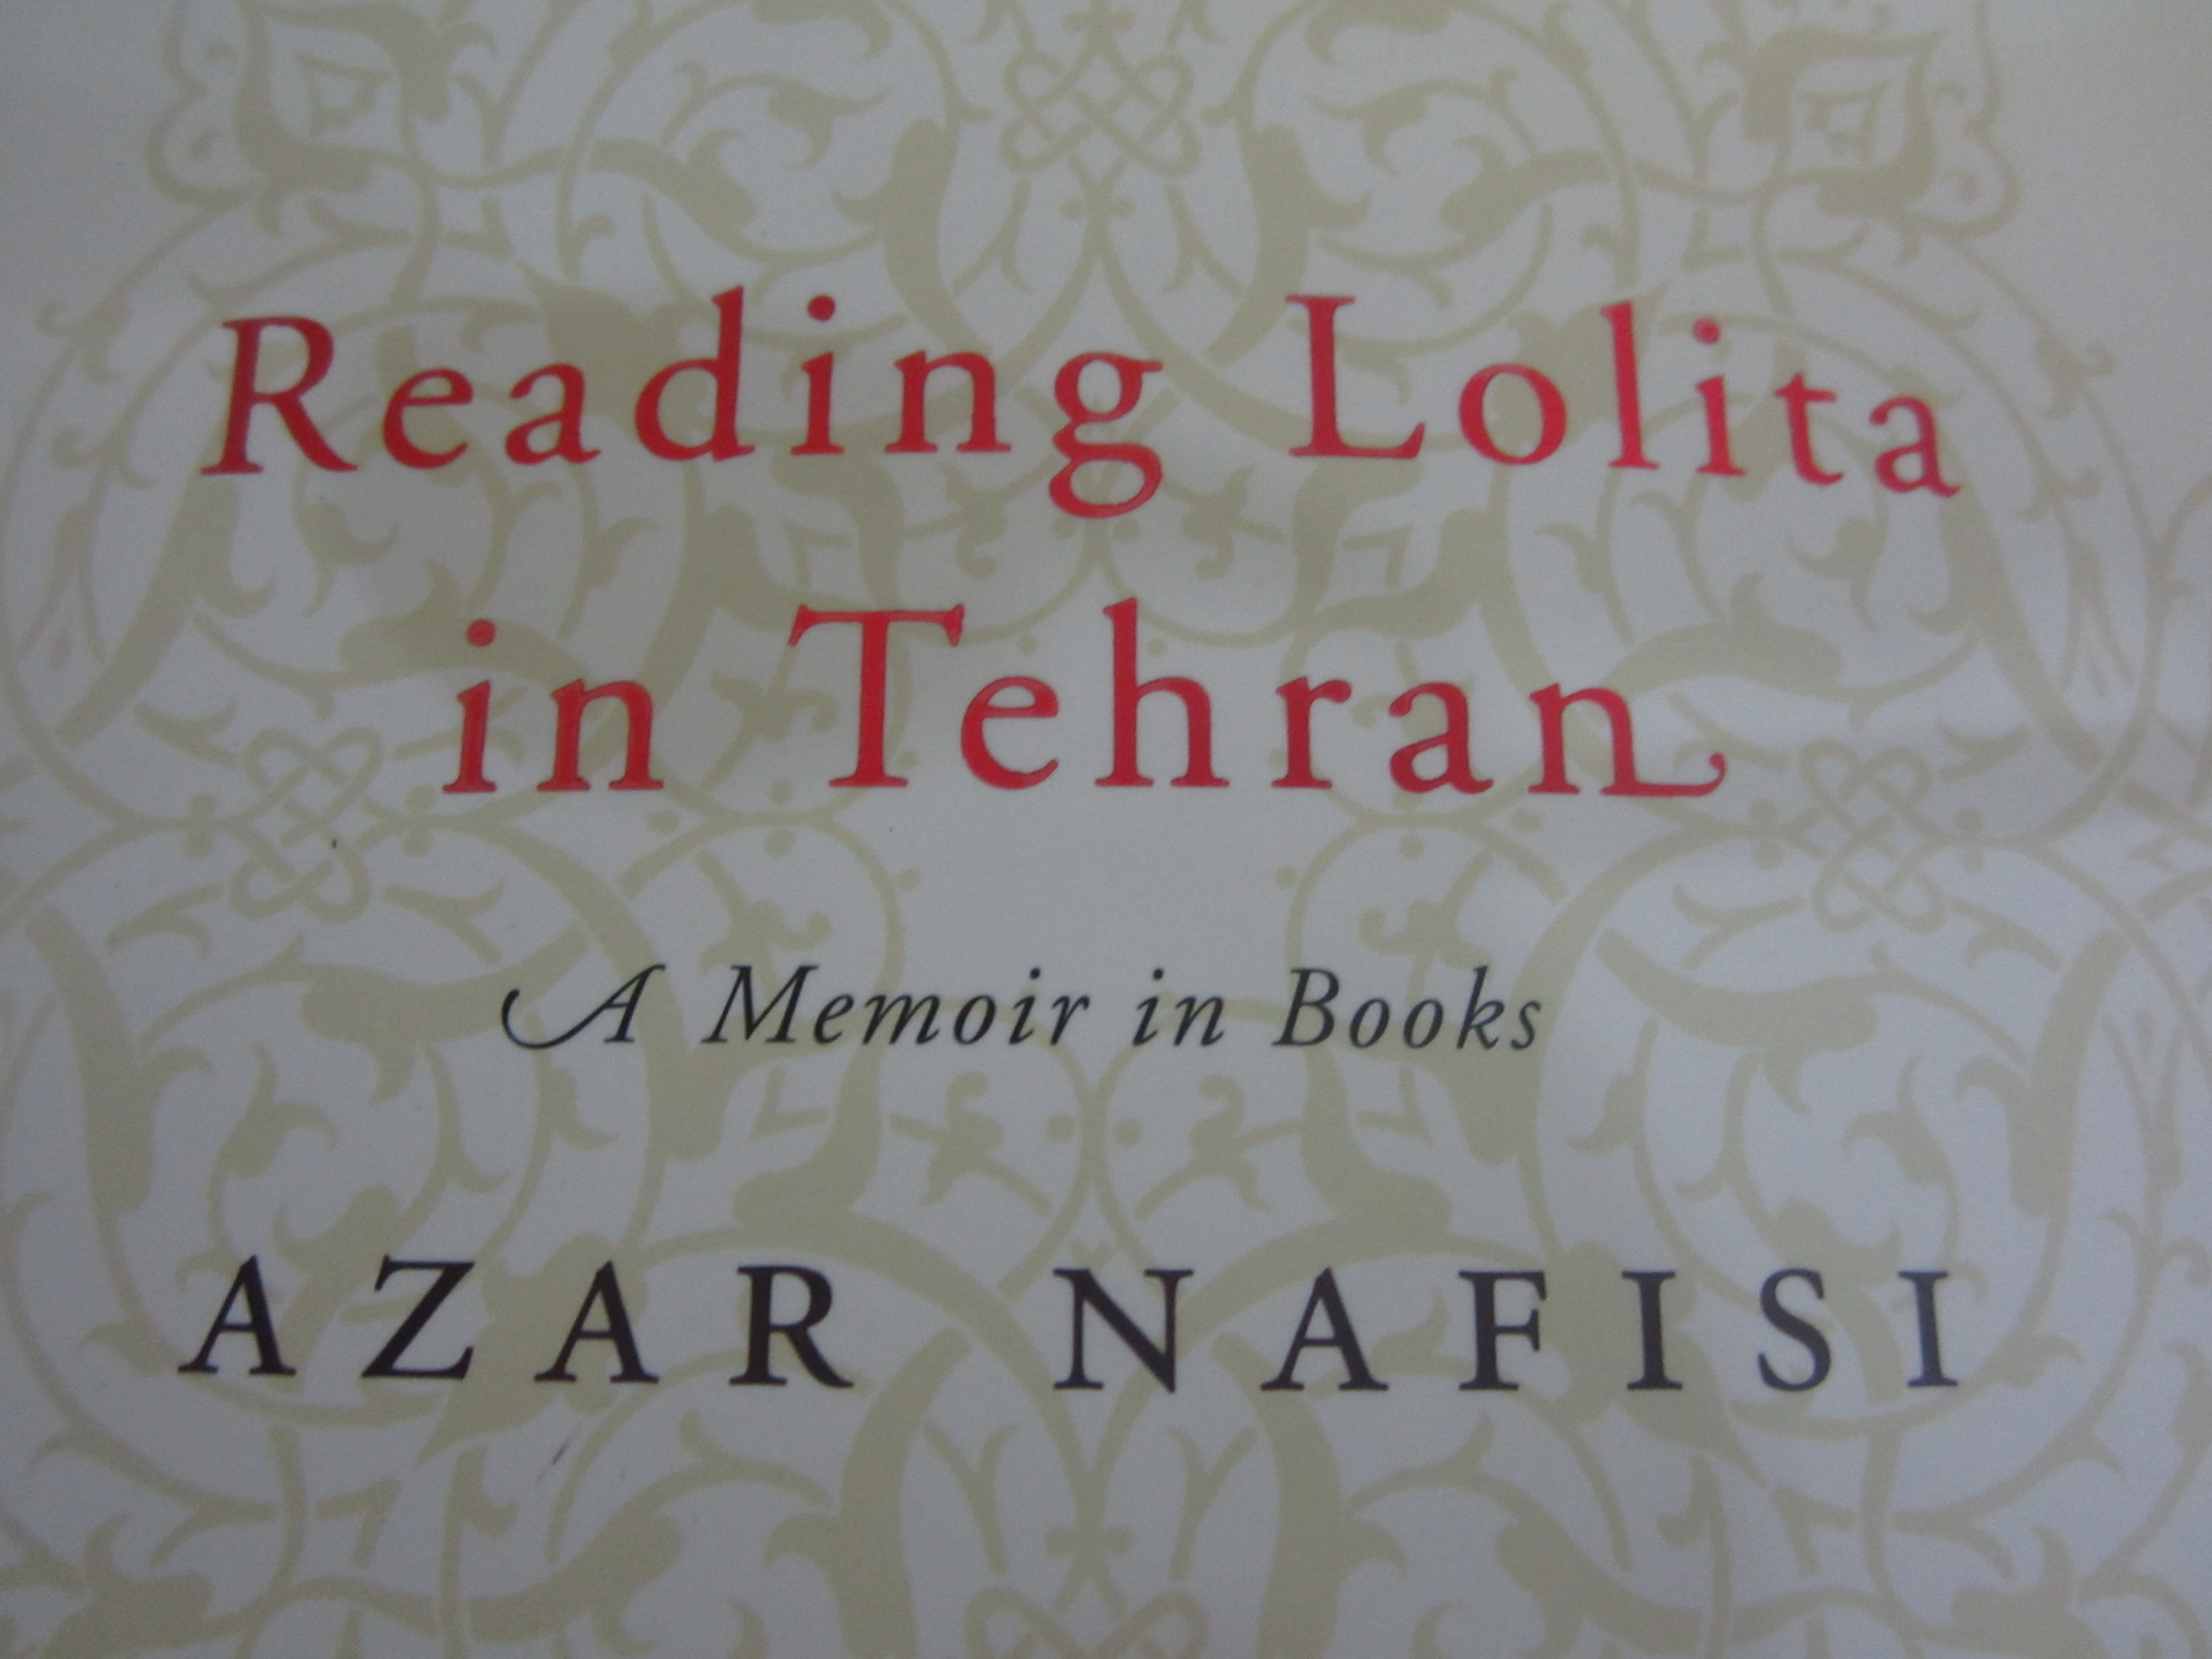 reading lolita in tehran It is of lolita that i want to write, but right now there is no way i can write about that novel without also writing about tehran this, then, is the story of lolita in tehran, how lolita gave a different color to tehran and how tehran helped redefine nabokov's novel, turning it into this lolita, our lolita.